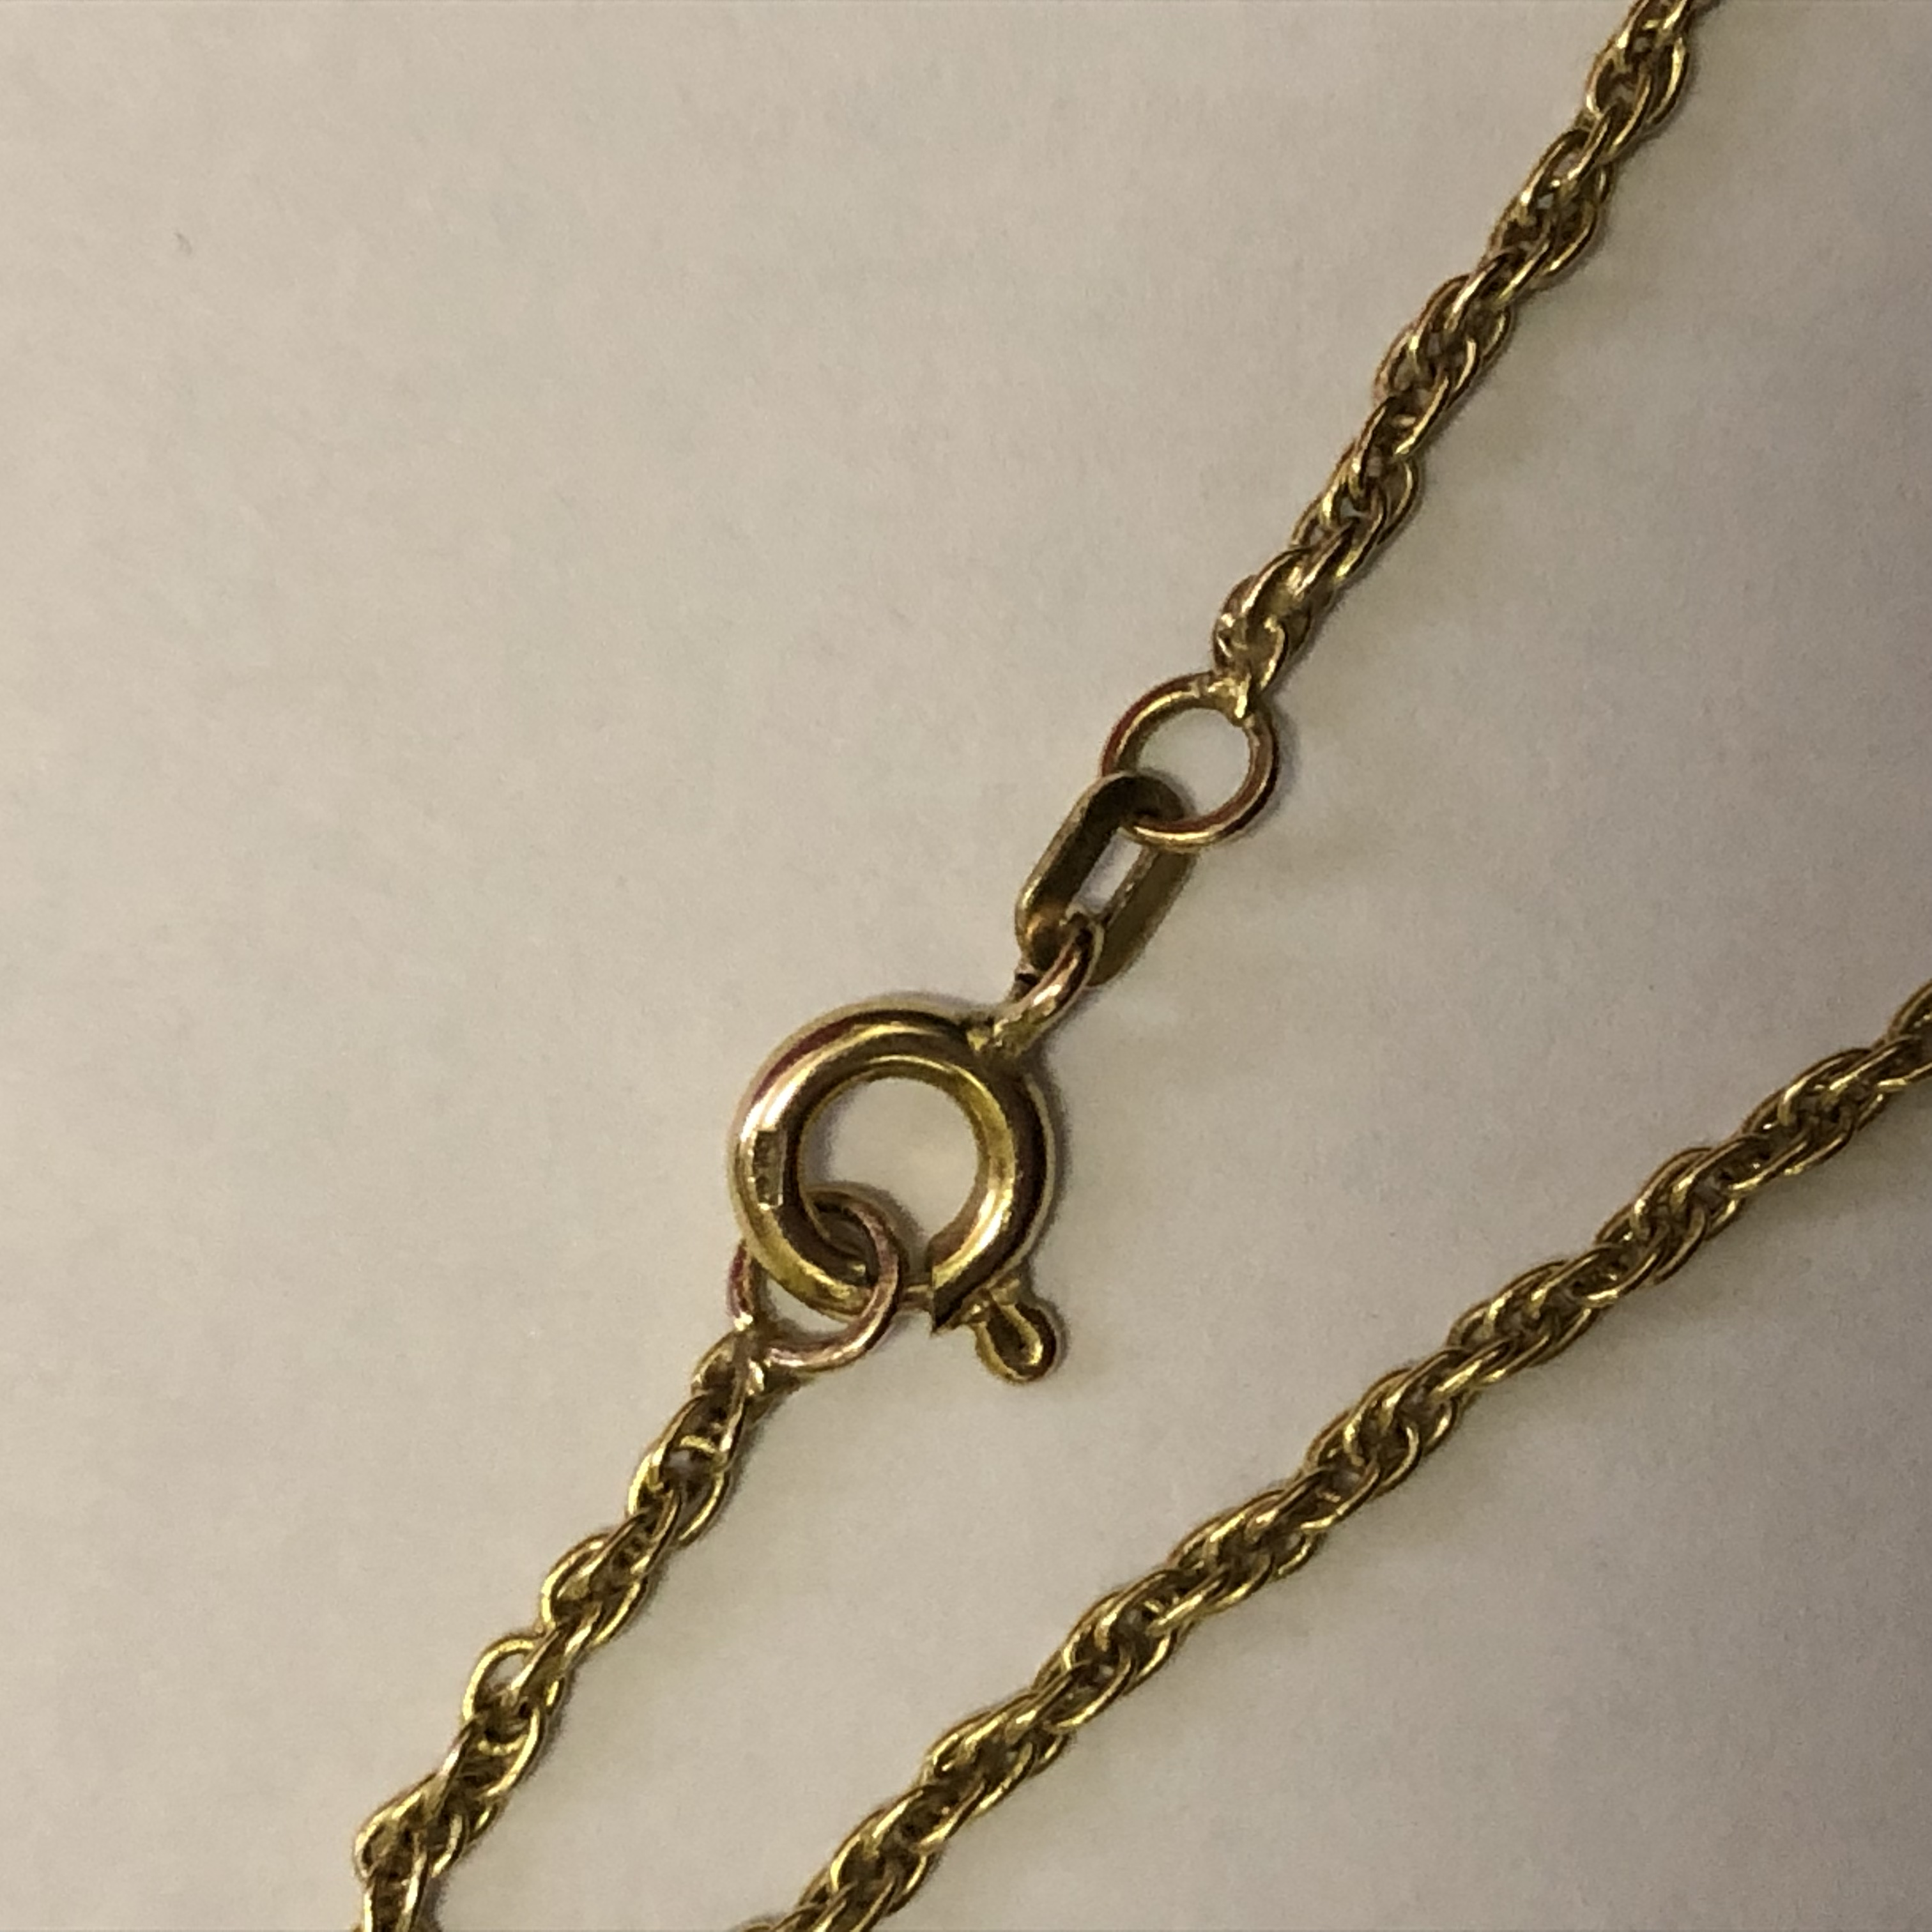 Lot 205 - 9CT GOLD BELCHER CHAIN WITH 9CT GOLD CAT PENDANT AND A 9CT GOLD SAPPHIRE AND DIAMOND CHIP OBLONG